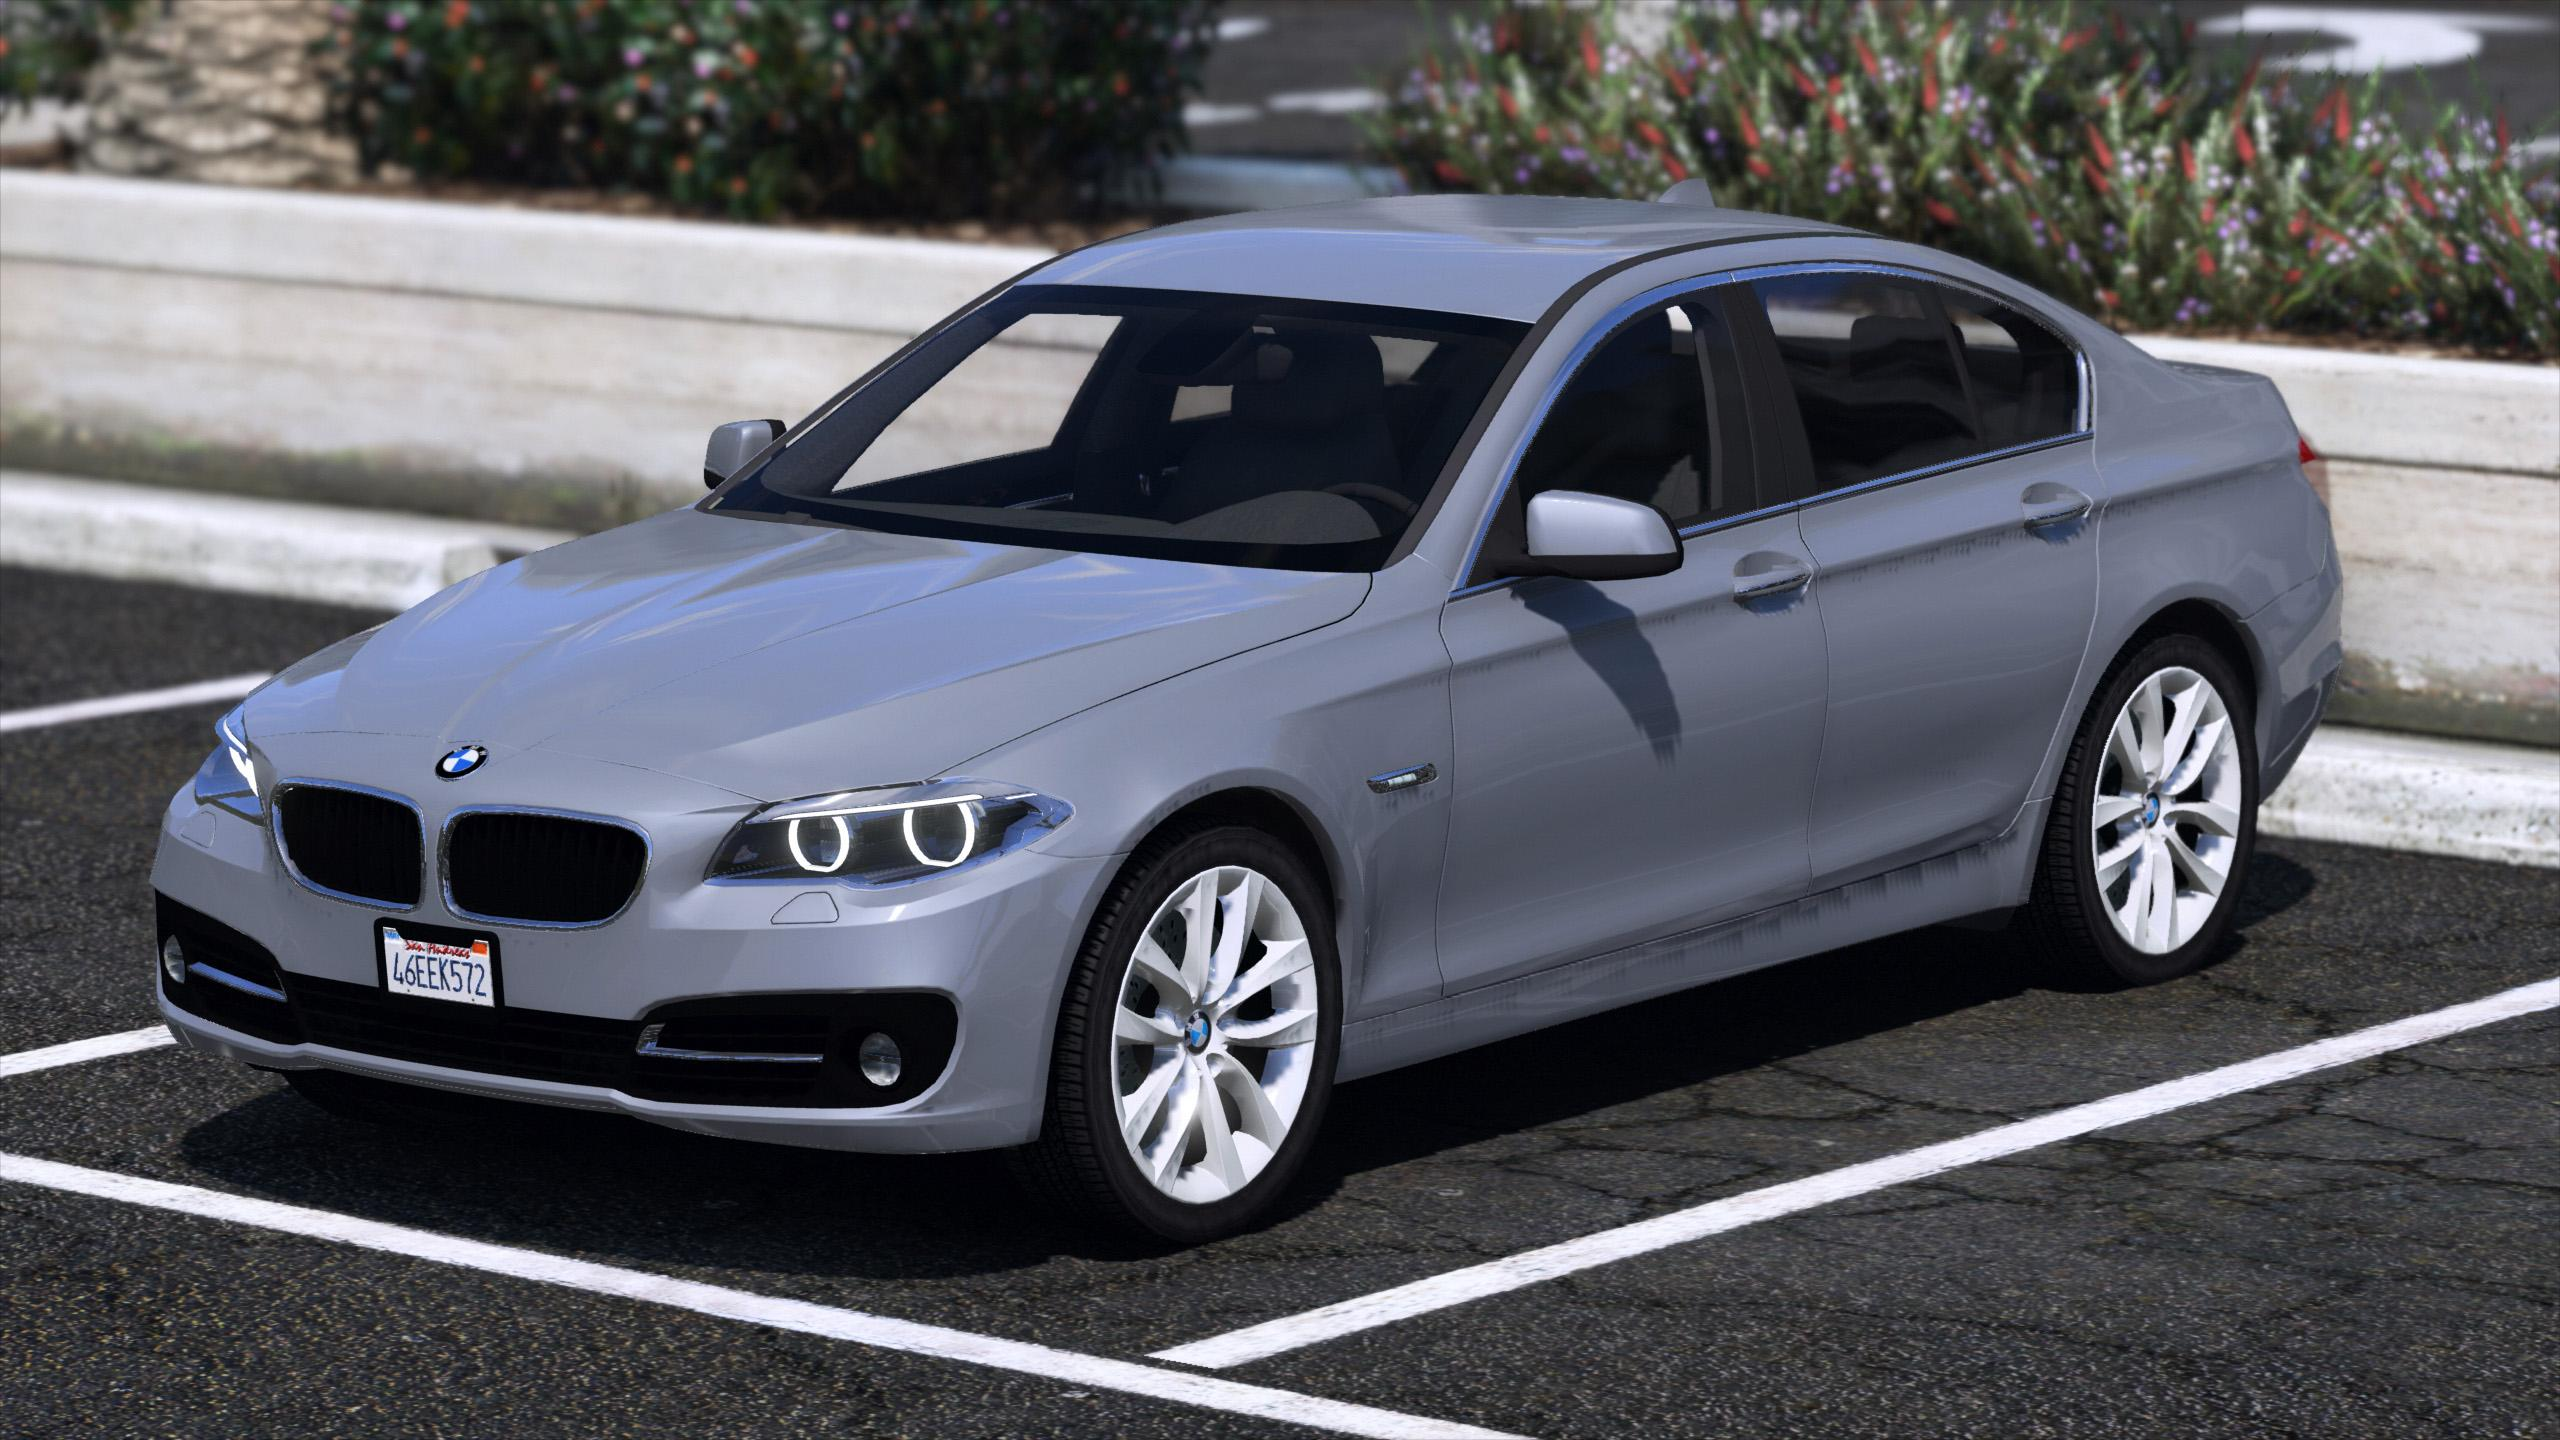 2015 bmw 530d f10 unlocked gta5. Black Bedroom Furniture Sets. Home Design Ideas